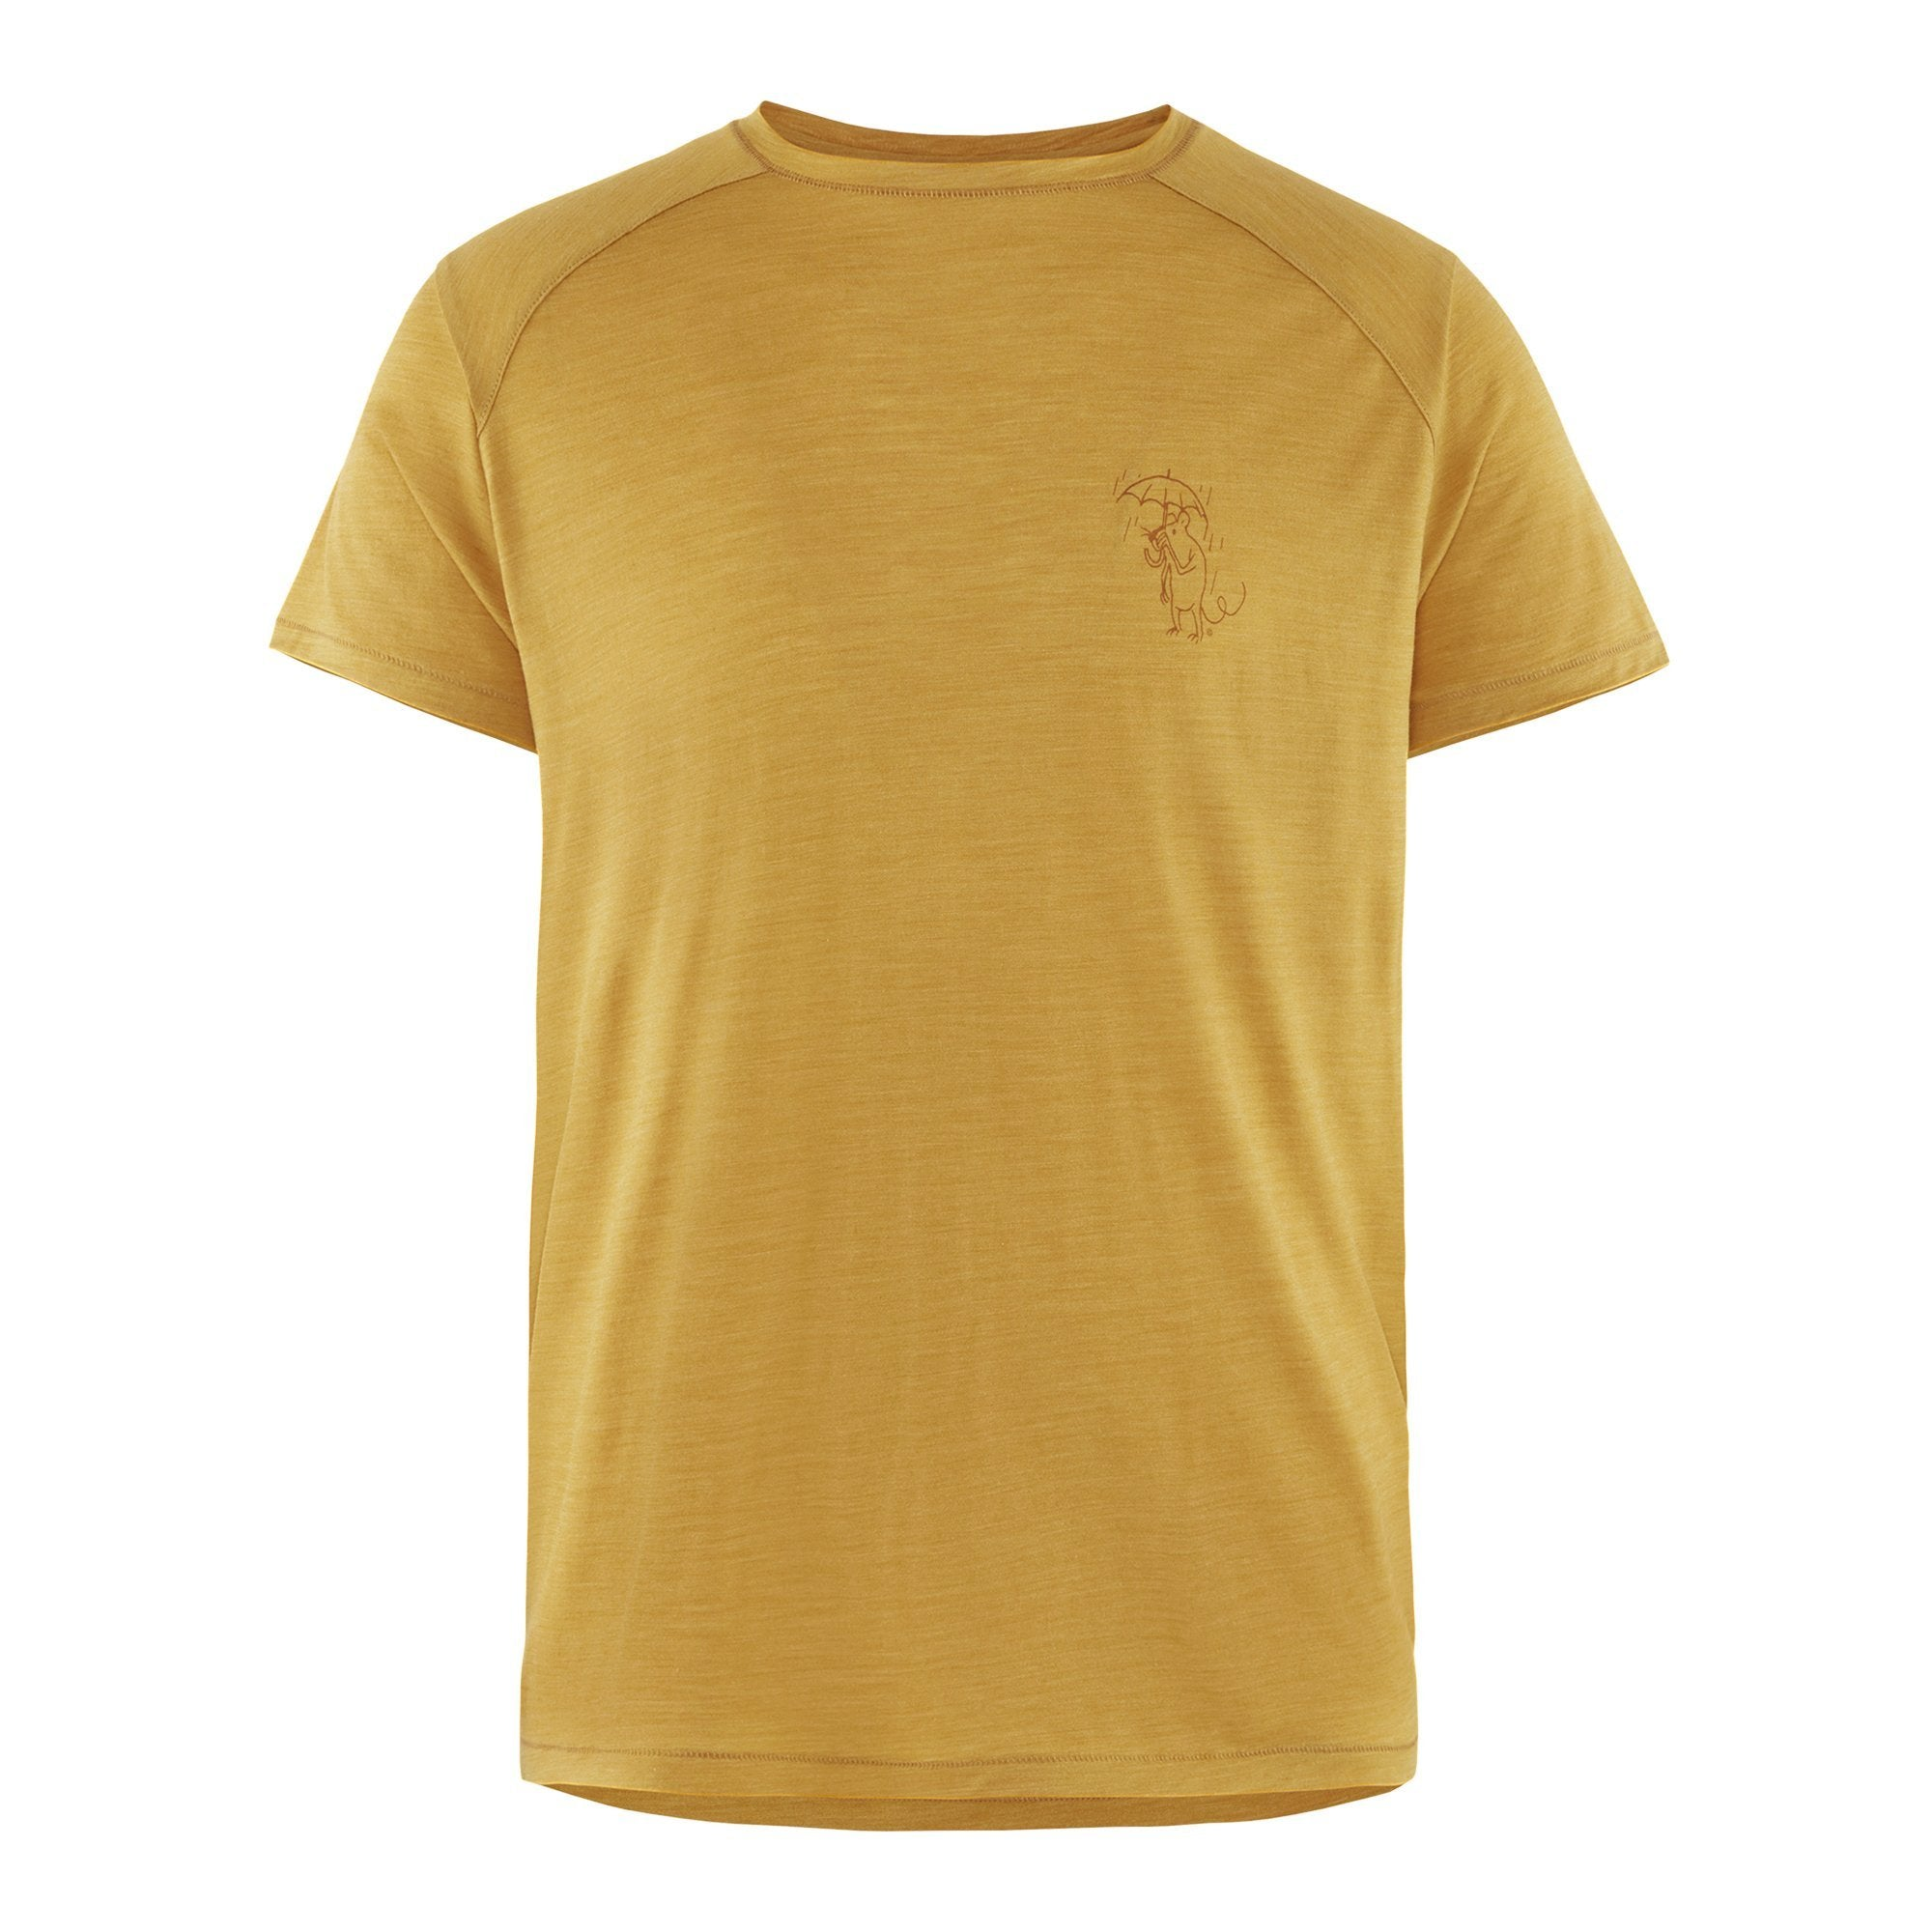 Eir Rain S/S Tee - Dark Honey - Herr - Vindpinad